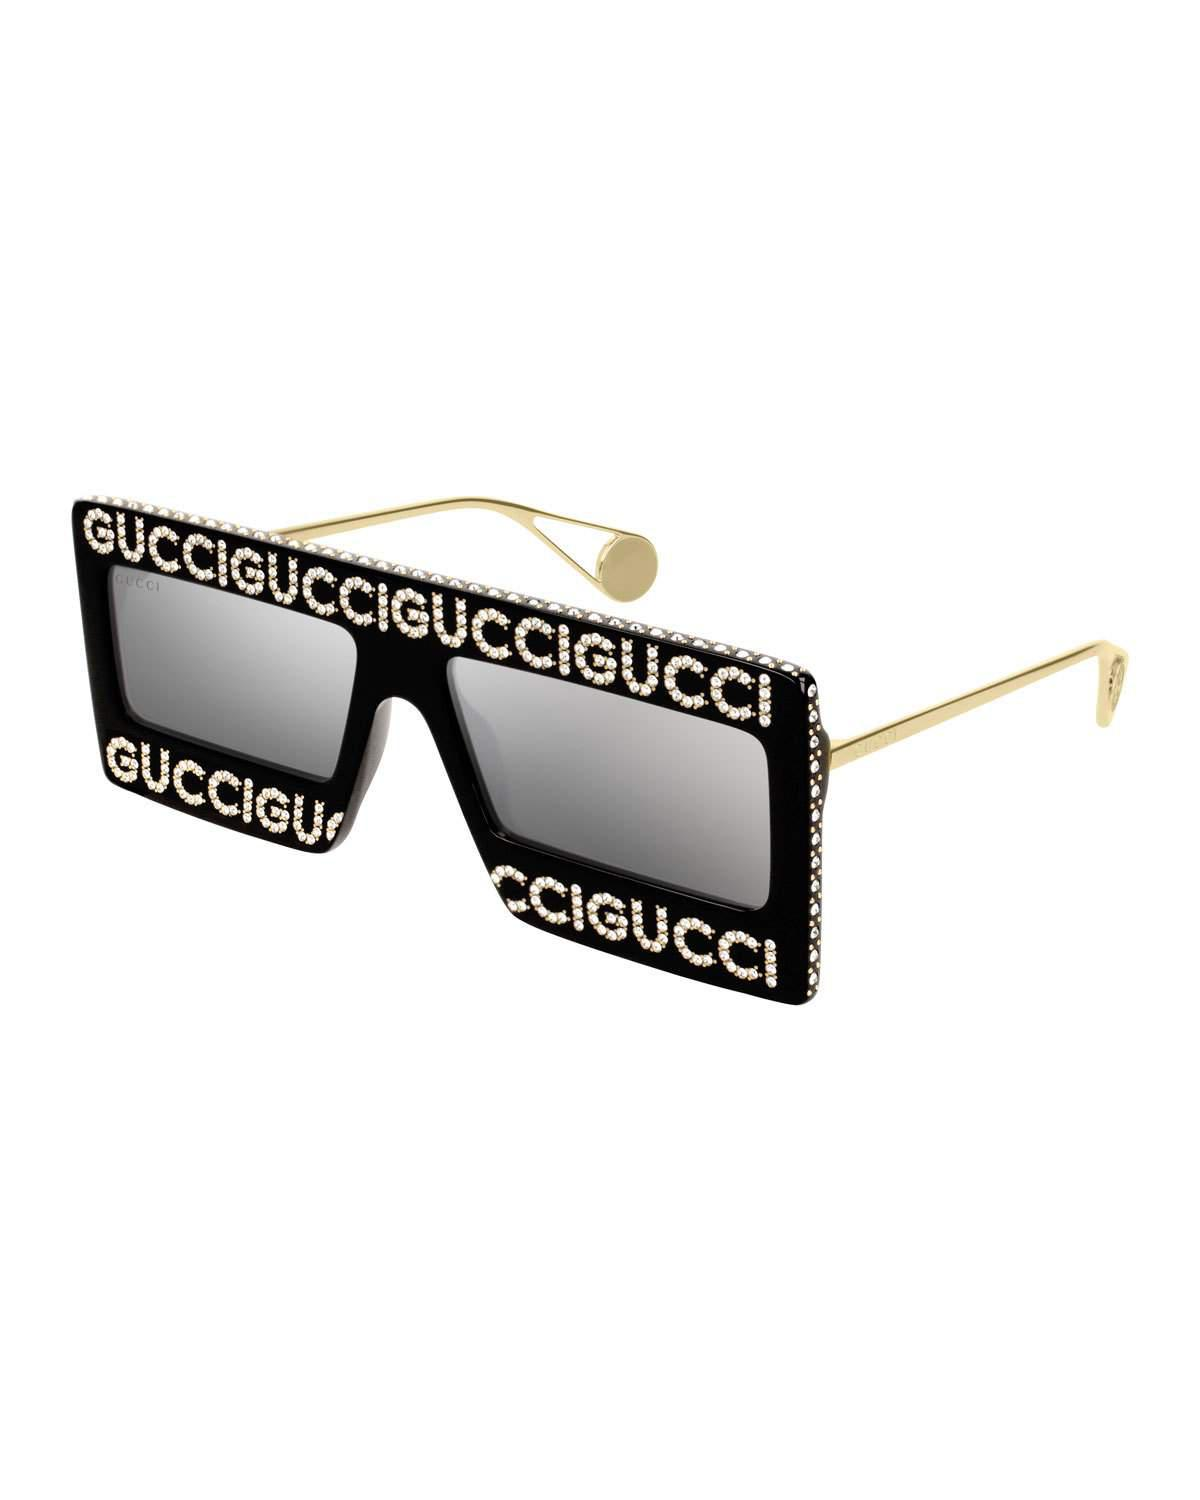 9e75abefe1da4 Gucci 60Mm Mask Rectangular Sunglasses - Black Swarovski W Grey White